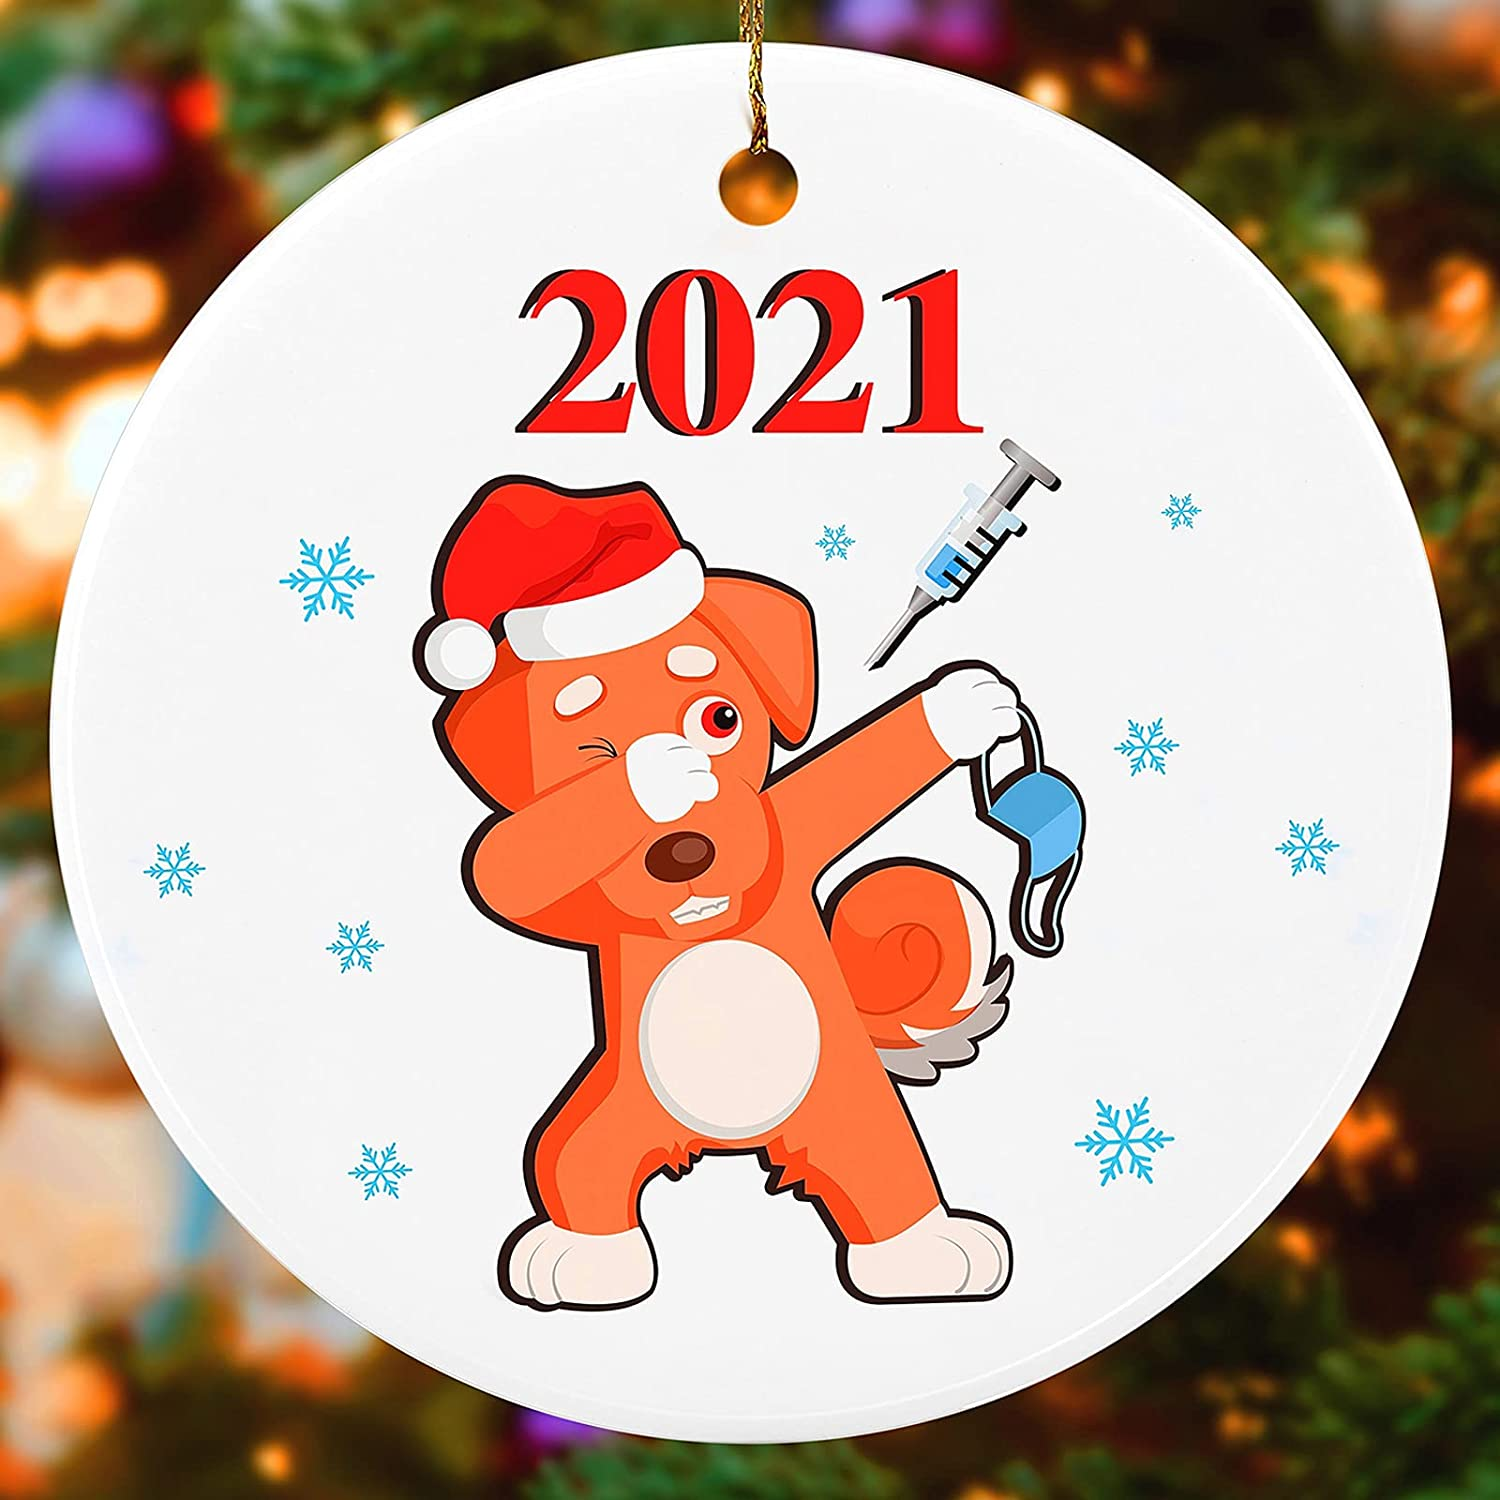 BEIFUMEI Christmas Limited time sale Decoration 2021 Max 44% OFF Personaliz Ornament